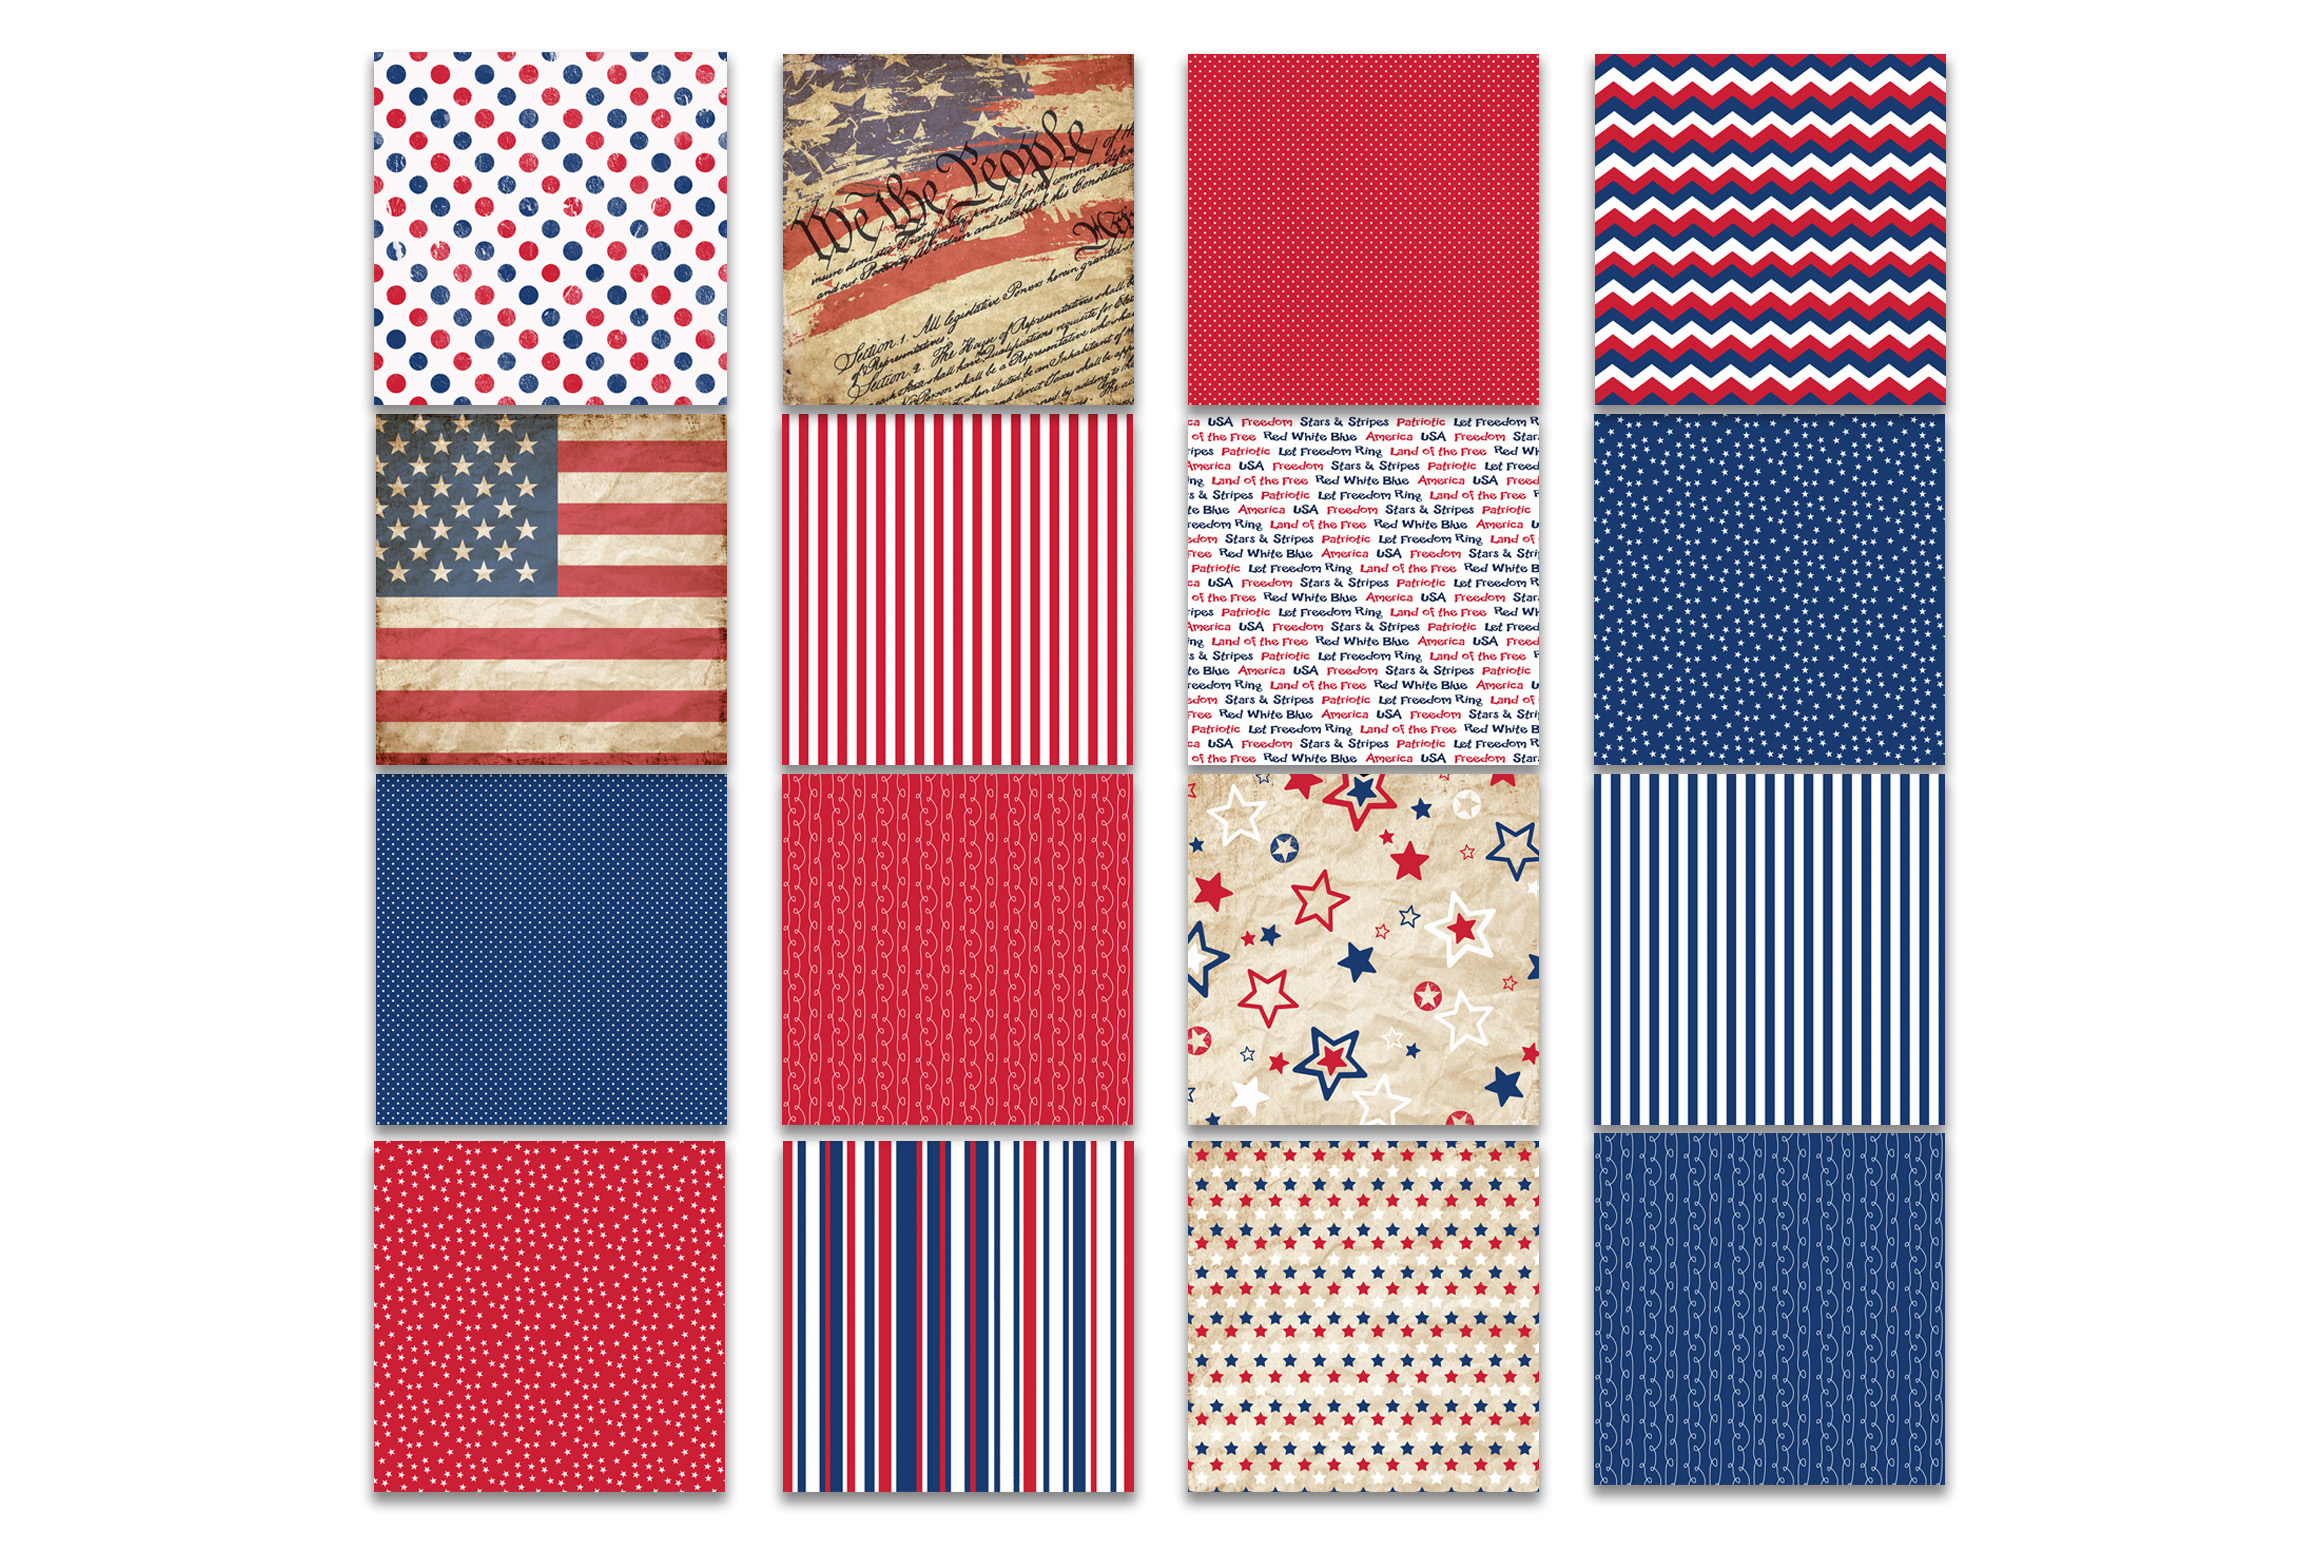 Patriotic Digital Paper Graphic Backgrounds By oldmarketdesigns - Image 2